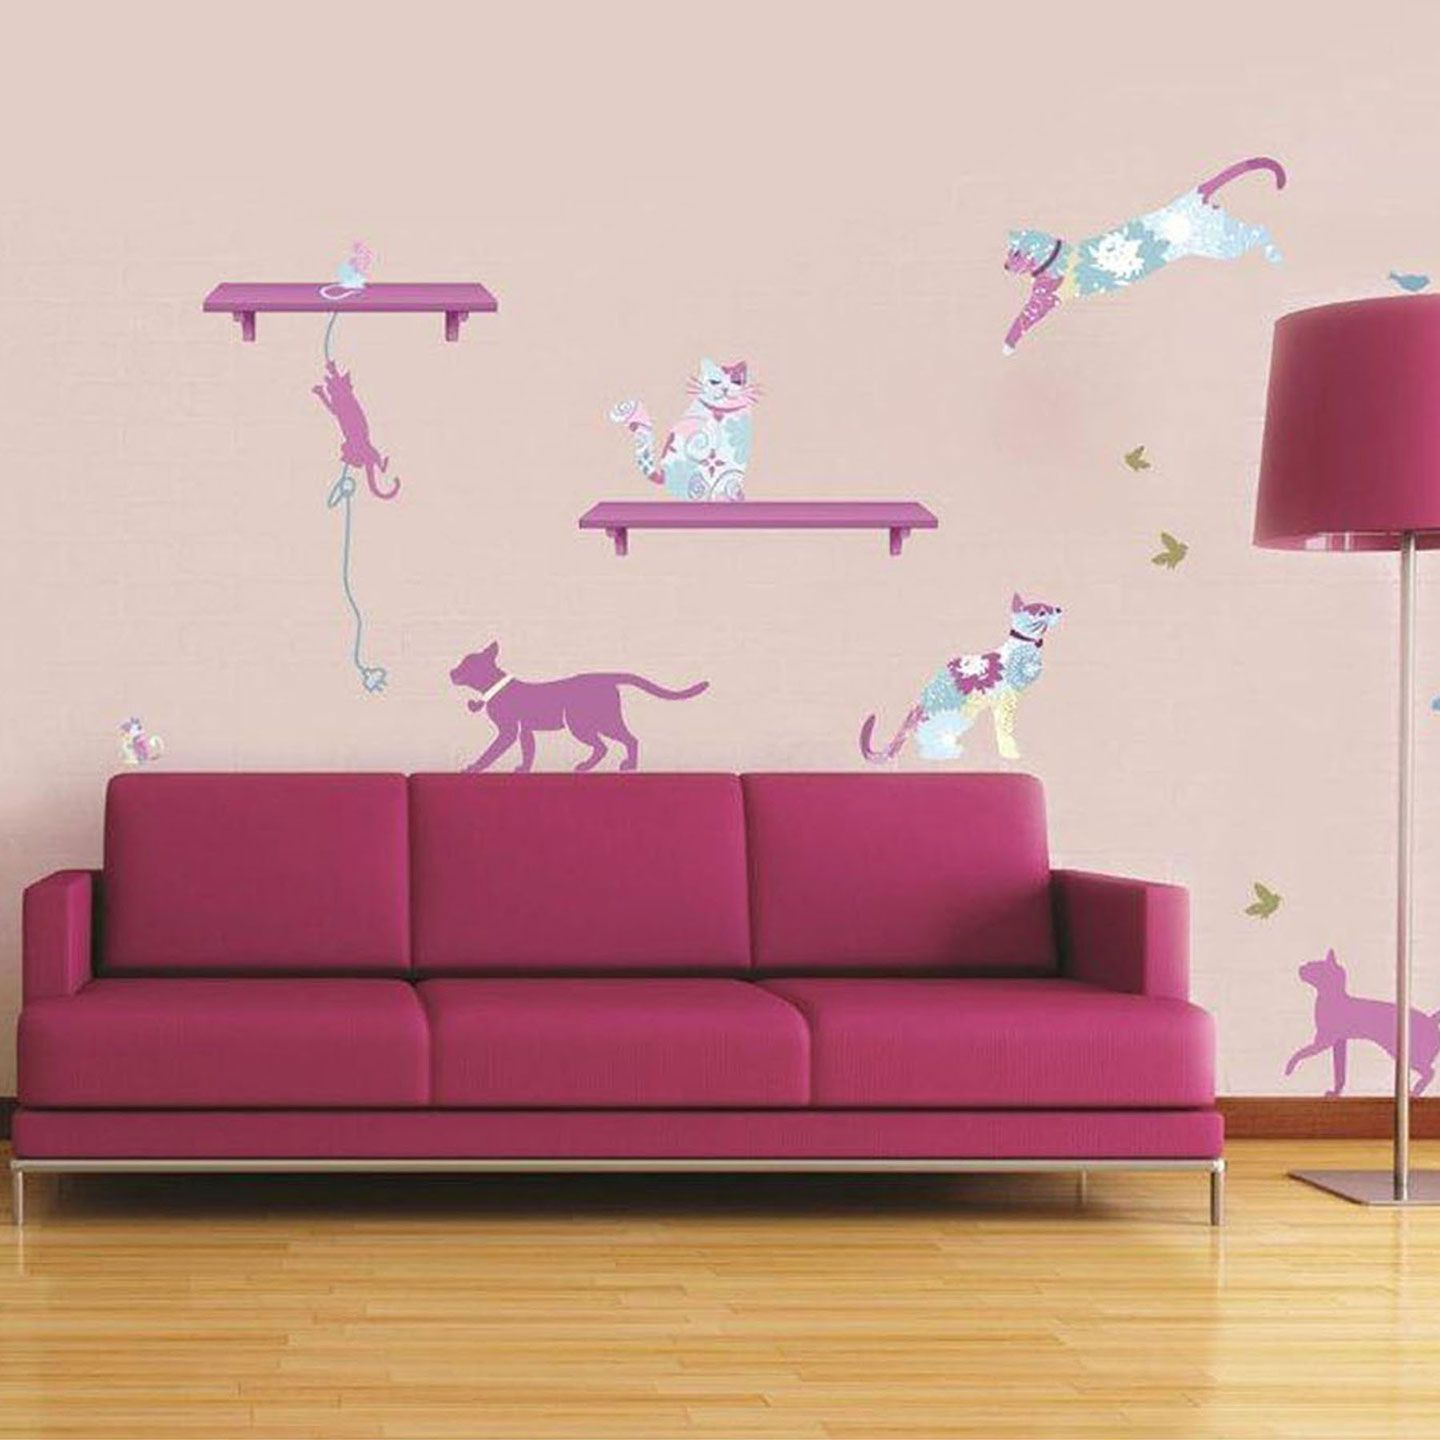 Art Applique By Kmg Patterned Pets Decorative Wall Decal Beyond